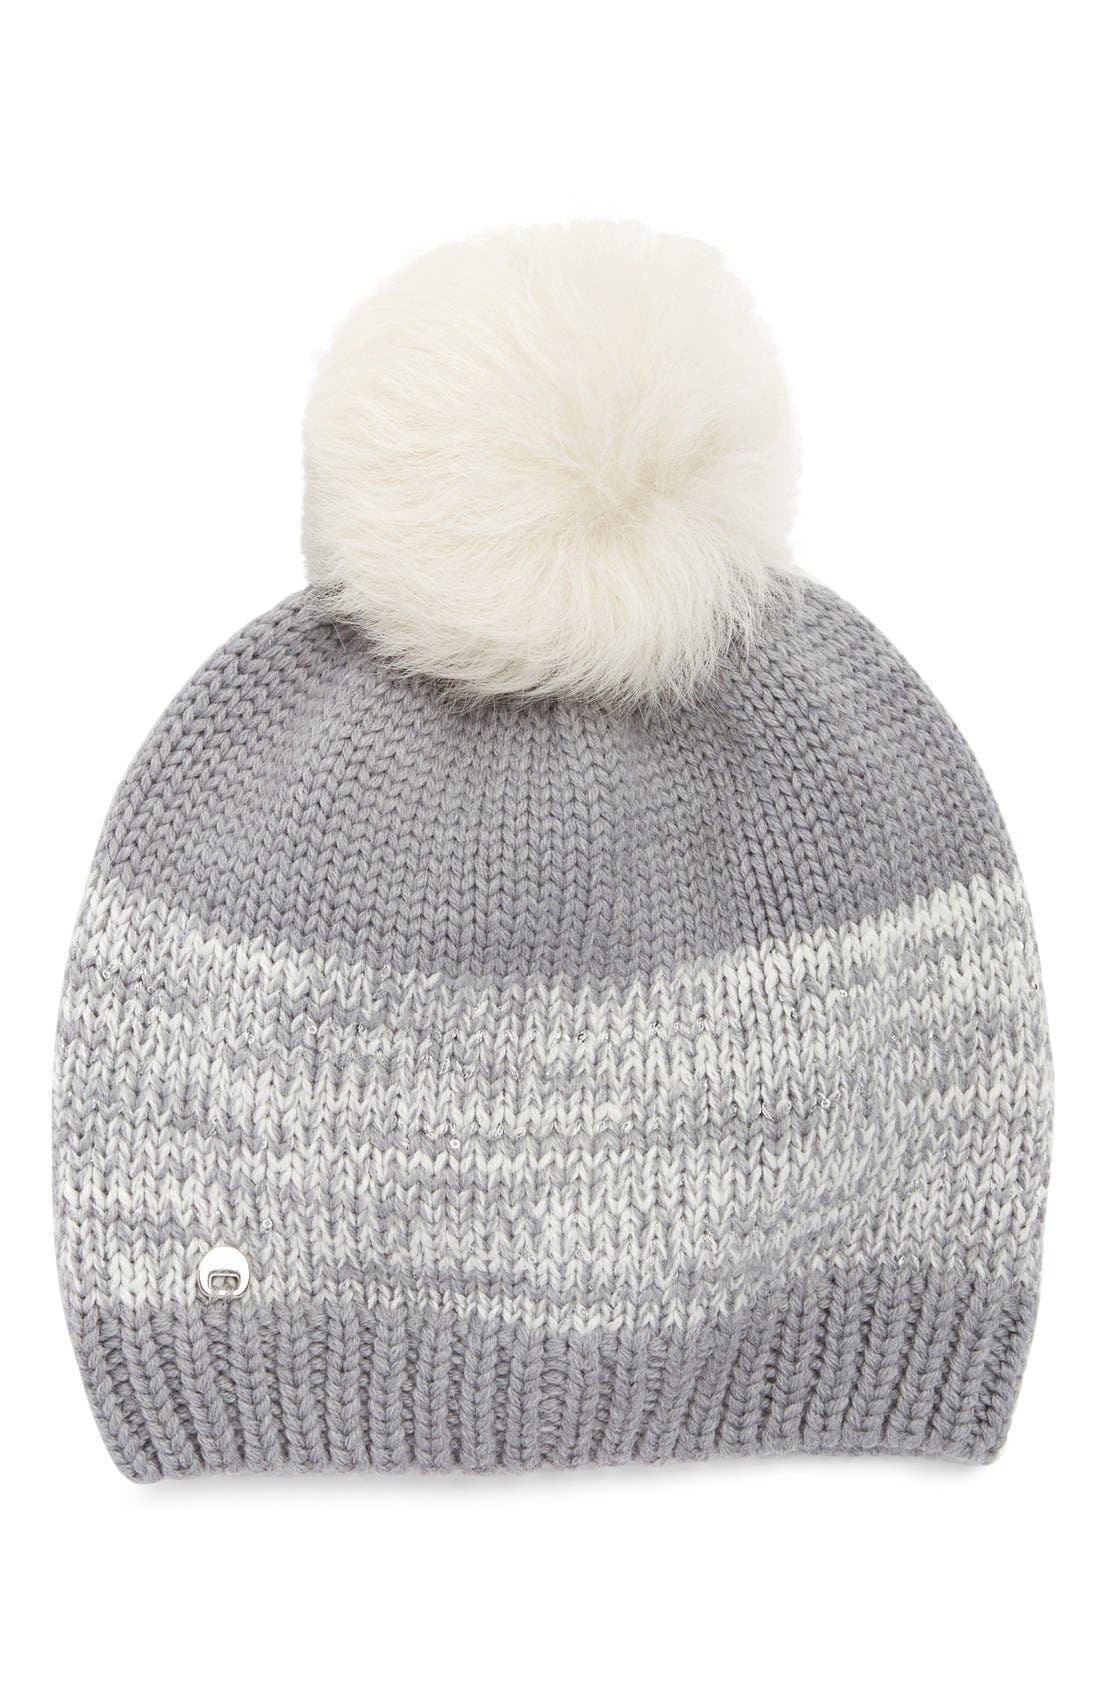 Alternate Image 1 Selected - UGG® Australia Genuine Shearling Pom Marled Knit Beanie